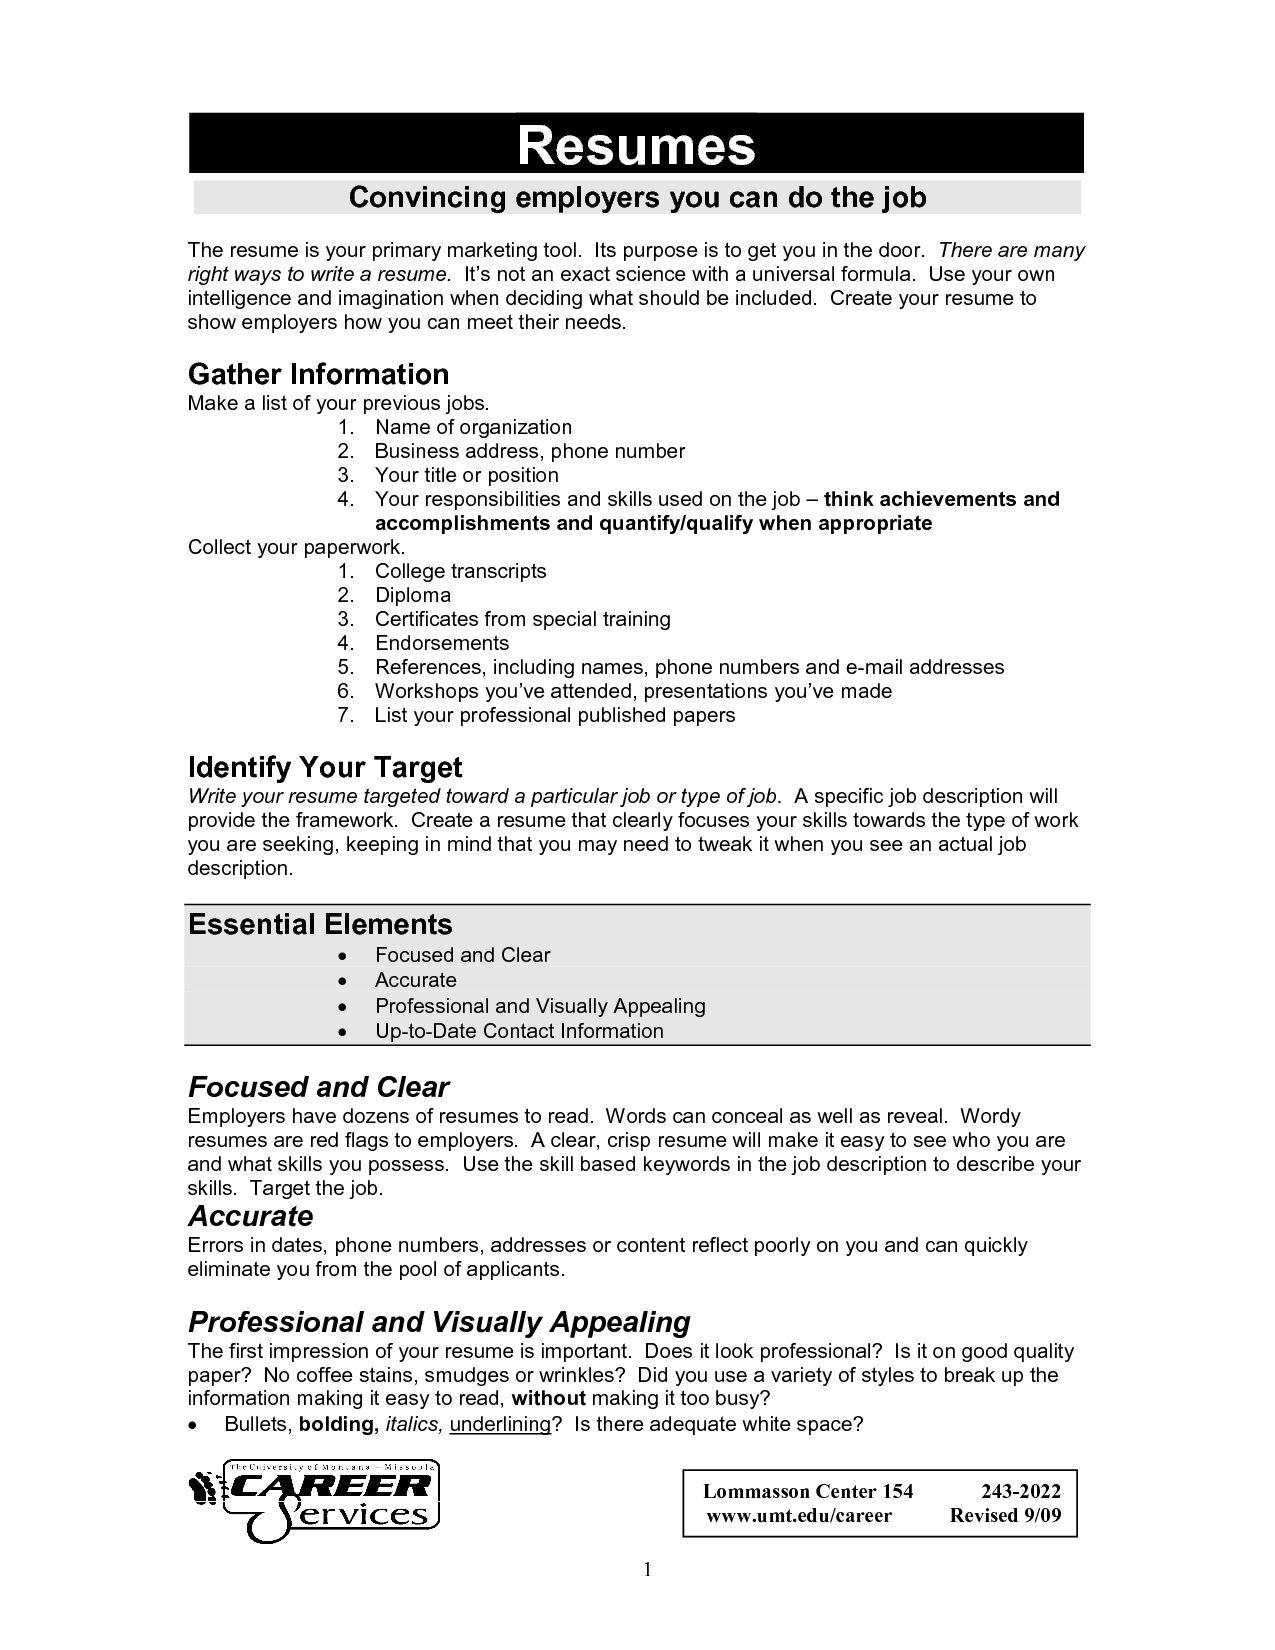 How Do You Write A Job Resume | Pin By Resumejob On Resume Job Pinterest Sample Resume Resume